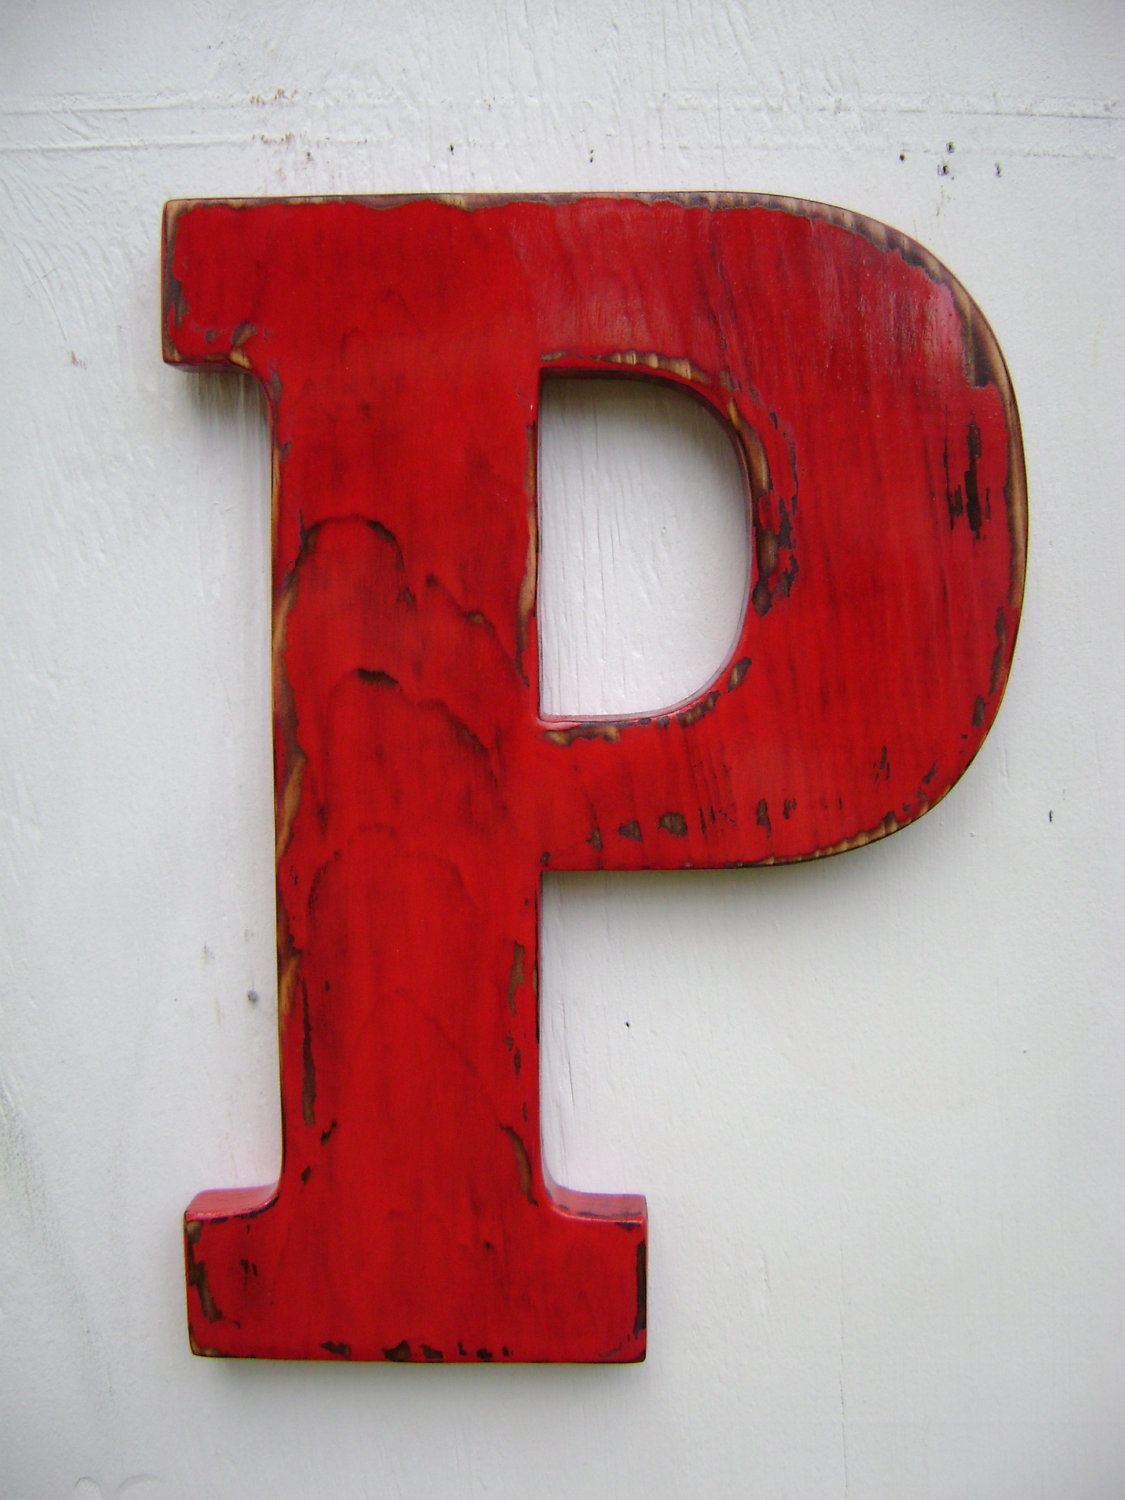 wooden letter p shabby chic rustic wall hanging decor painted true red